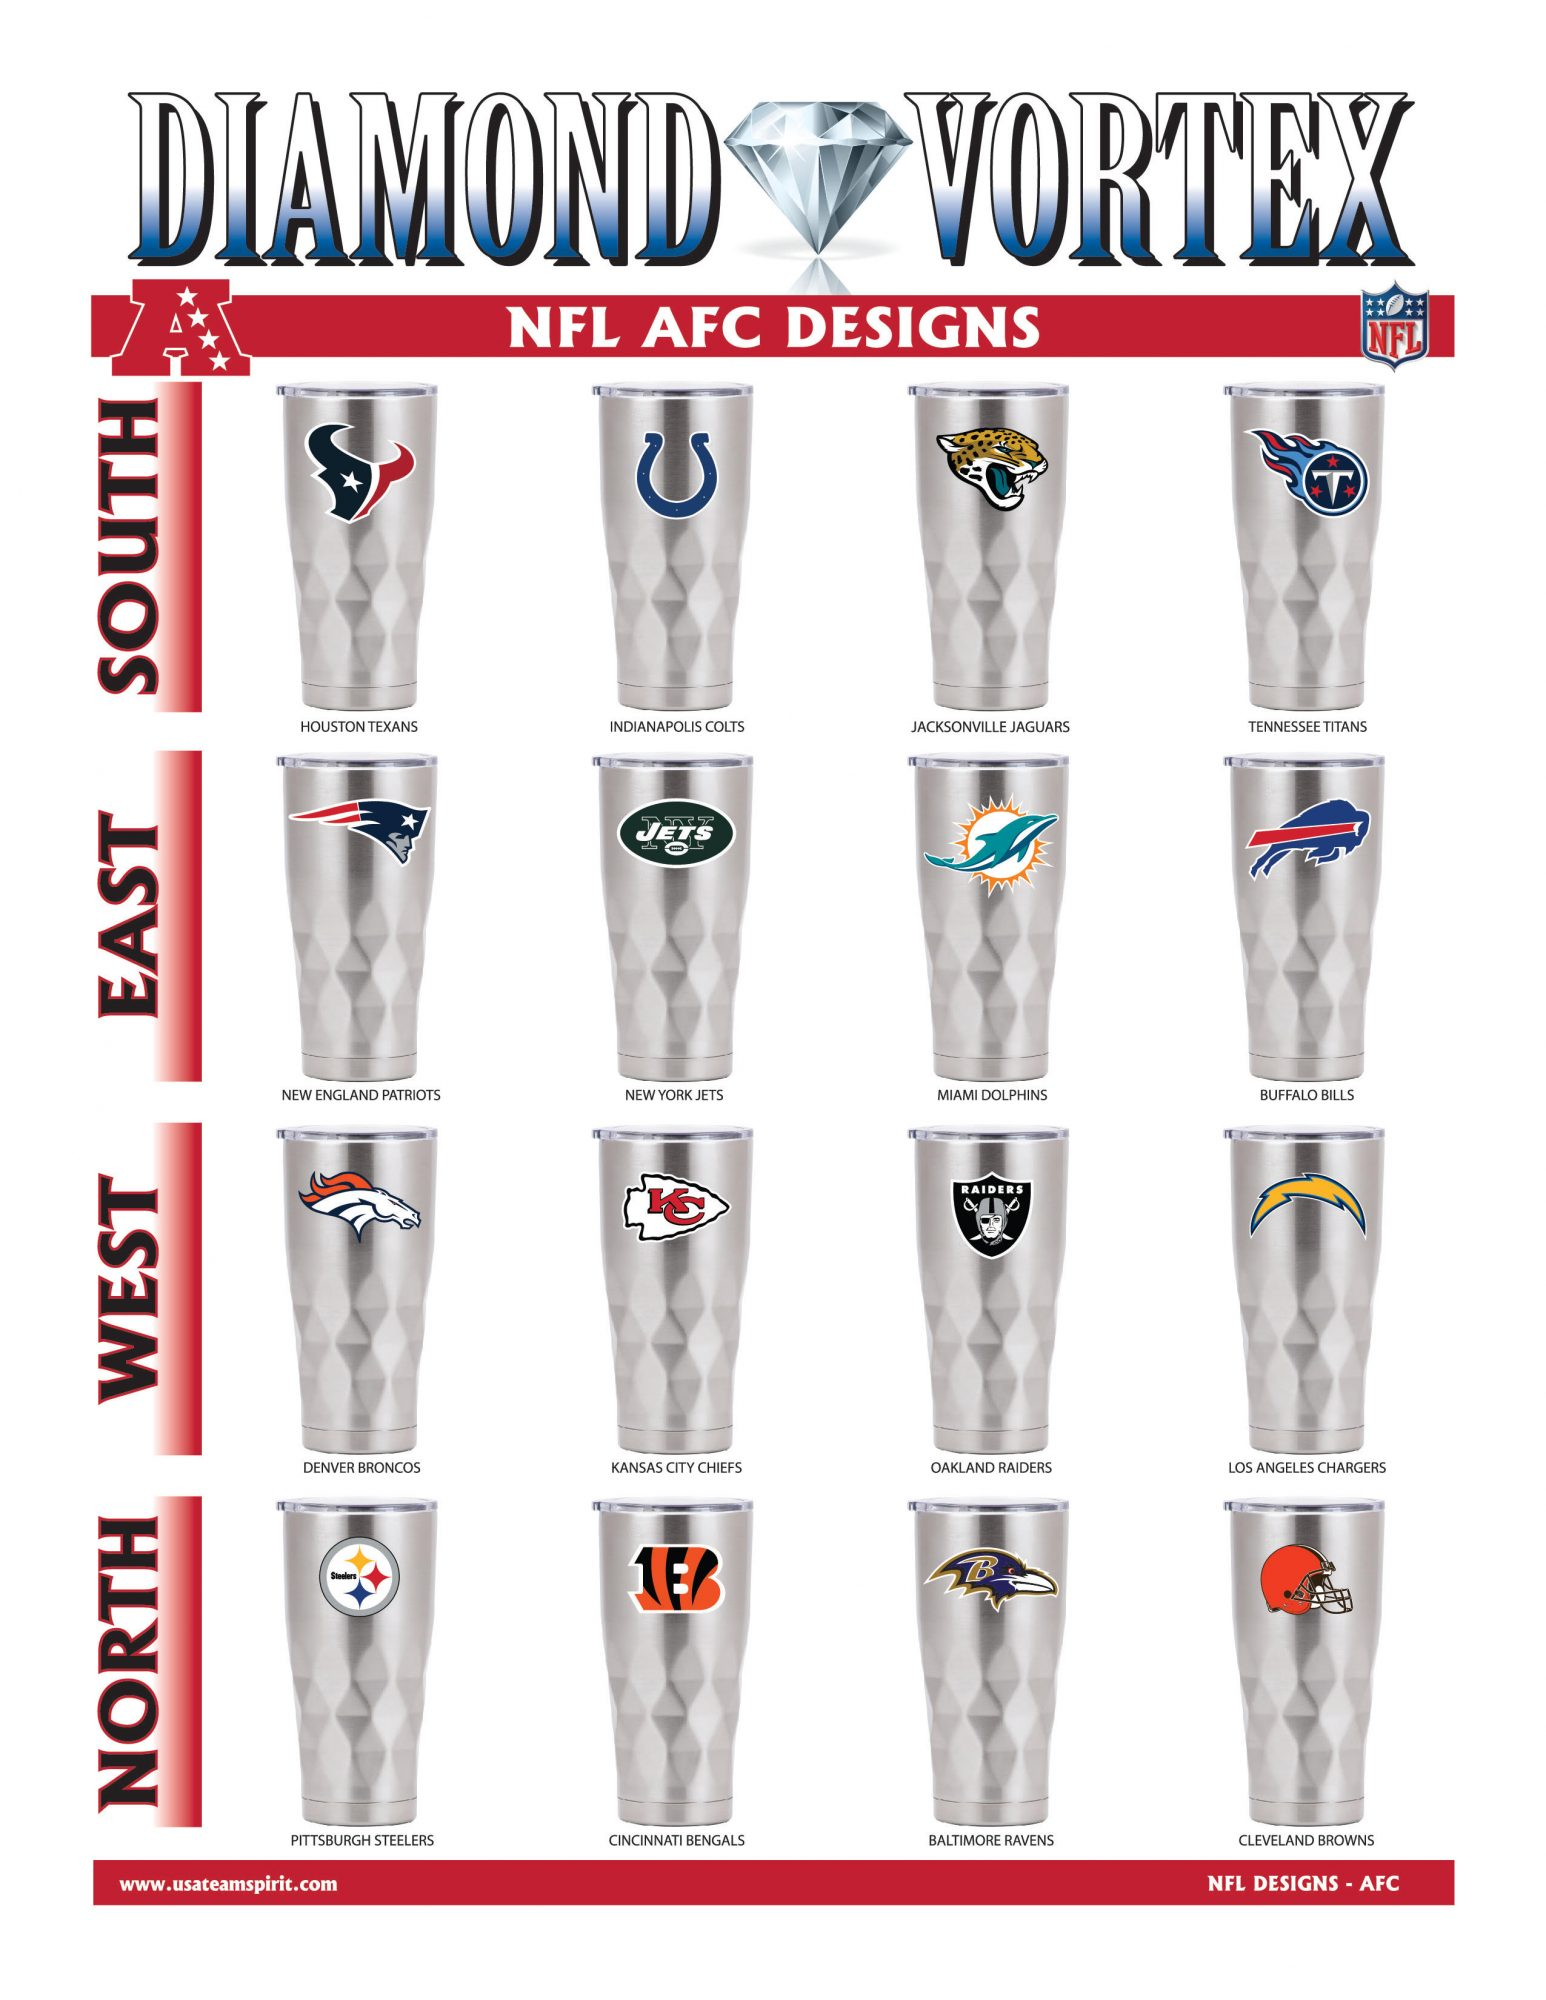 22oz NFL Diamond Vortex Page2